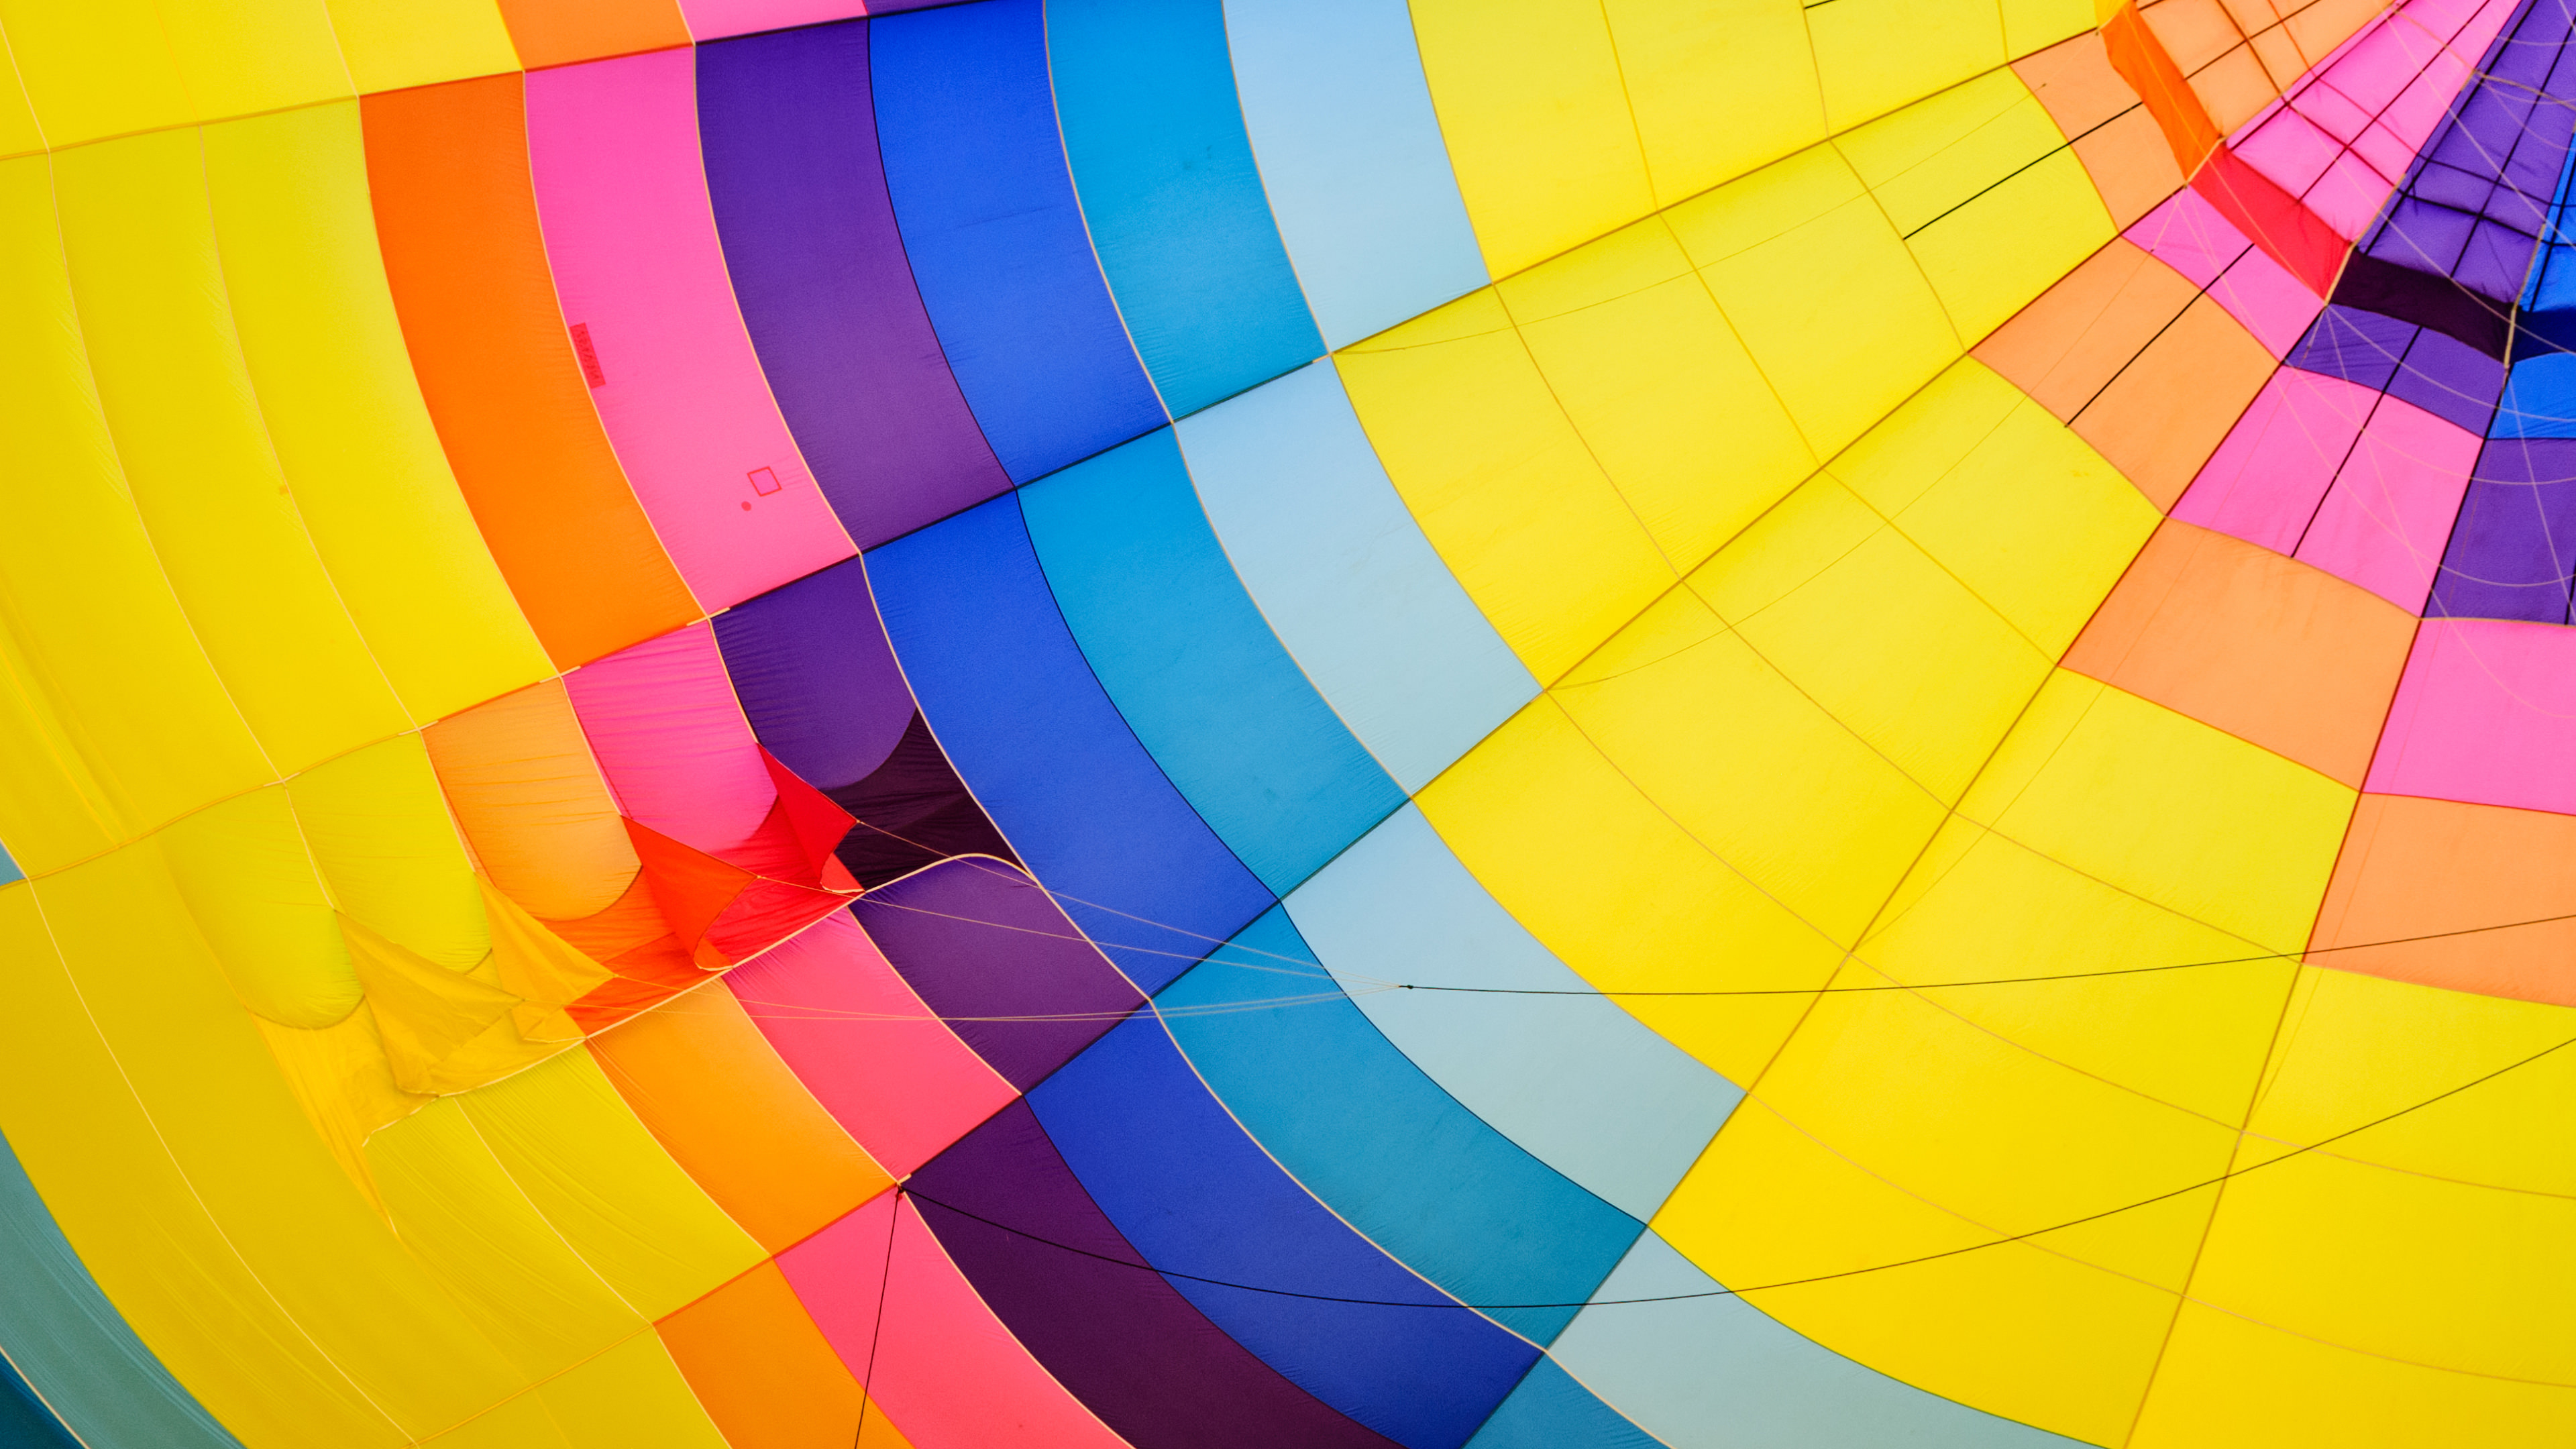 Colorful Hot Air Balloon 4k Wallpapers Hd Wallpapers